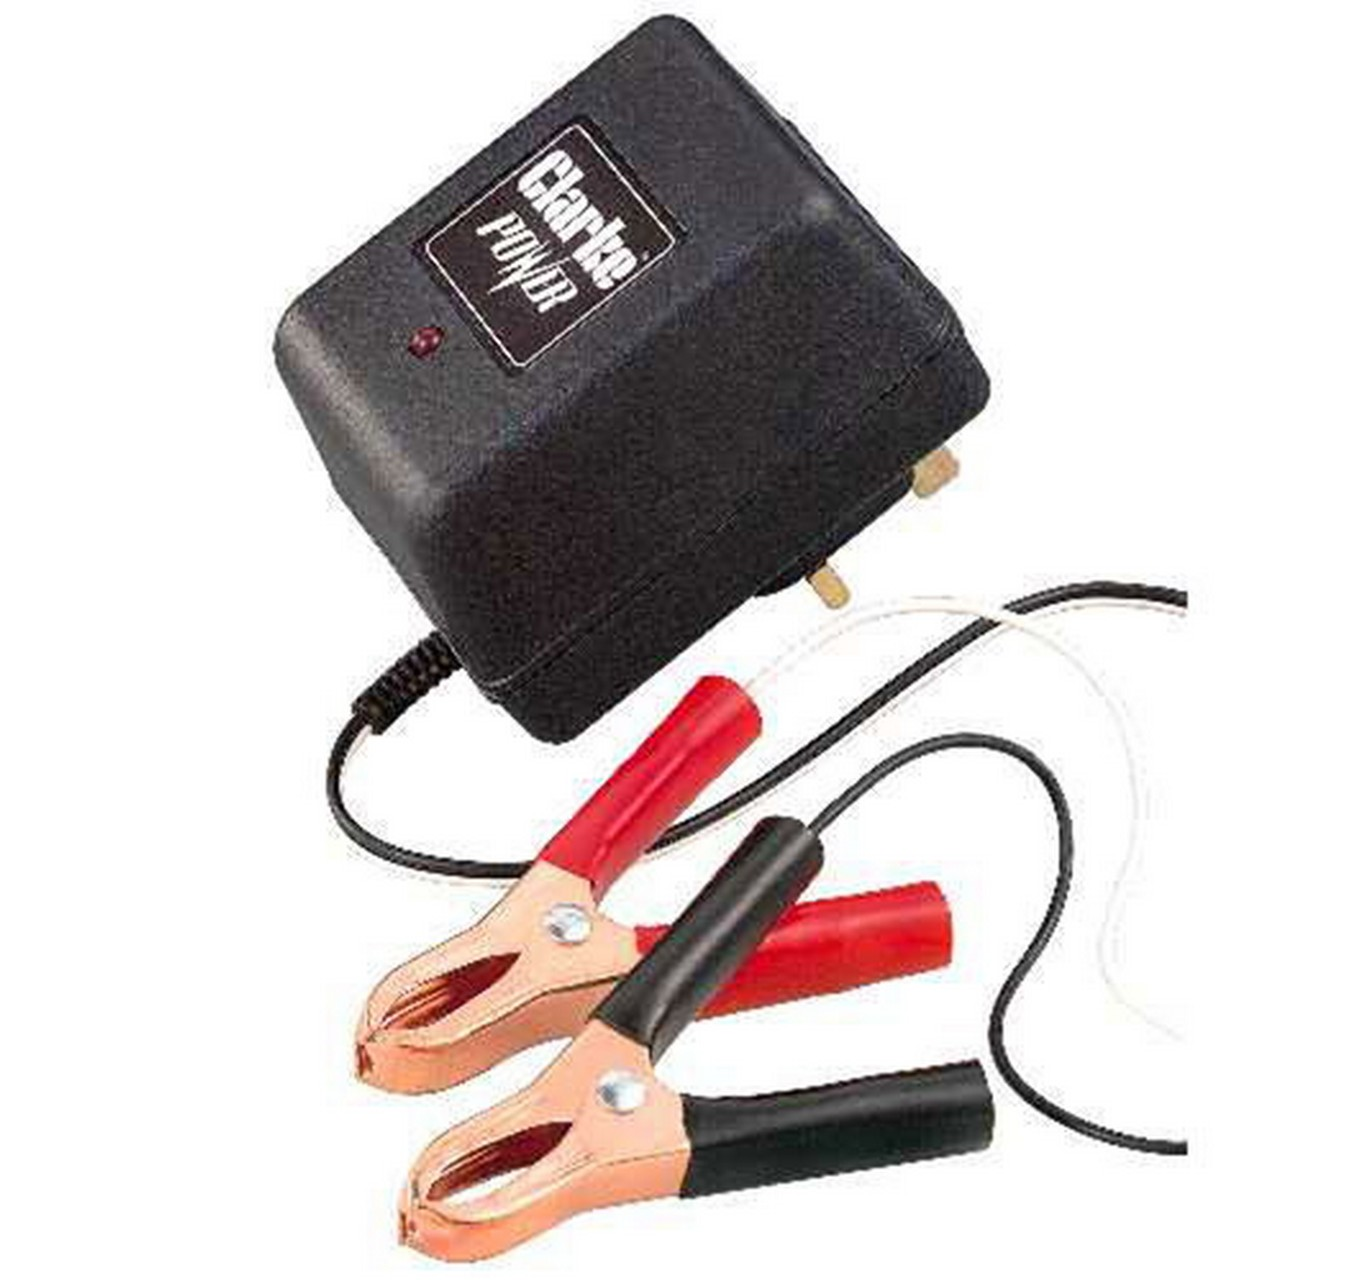 12v 0.5A Trickle Charger